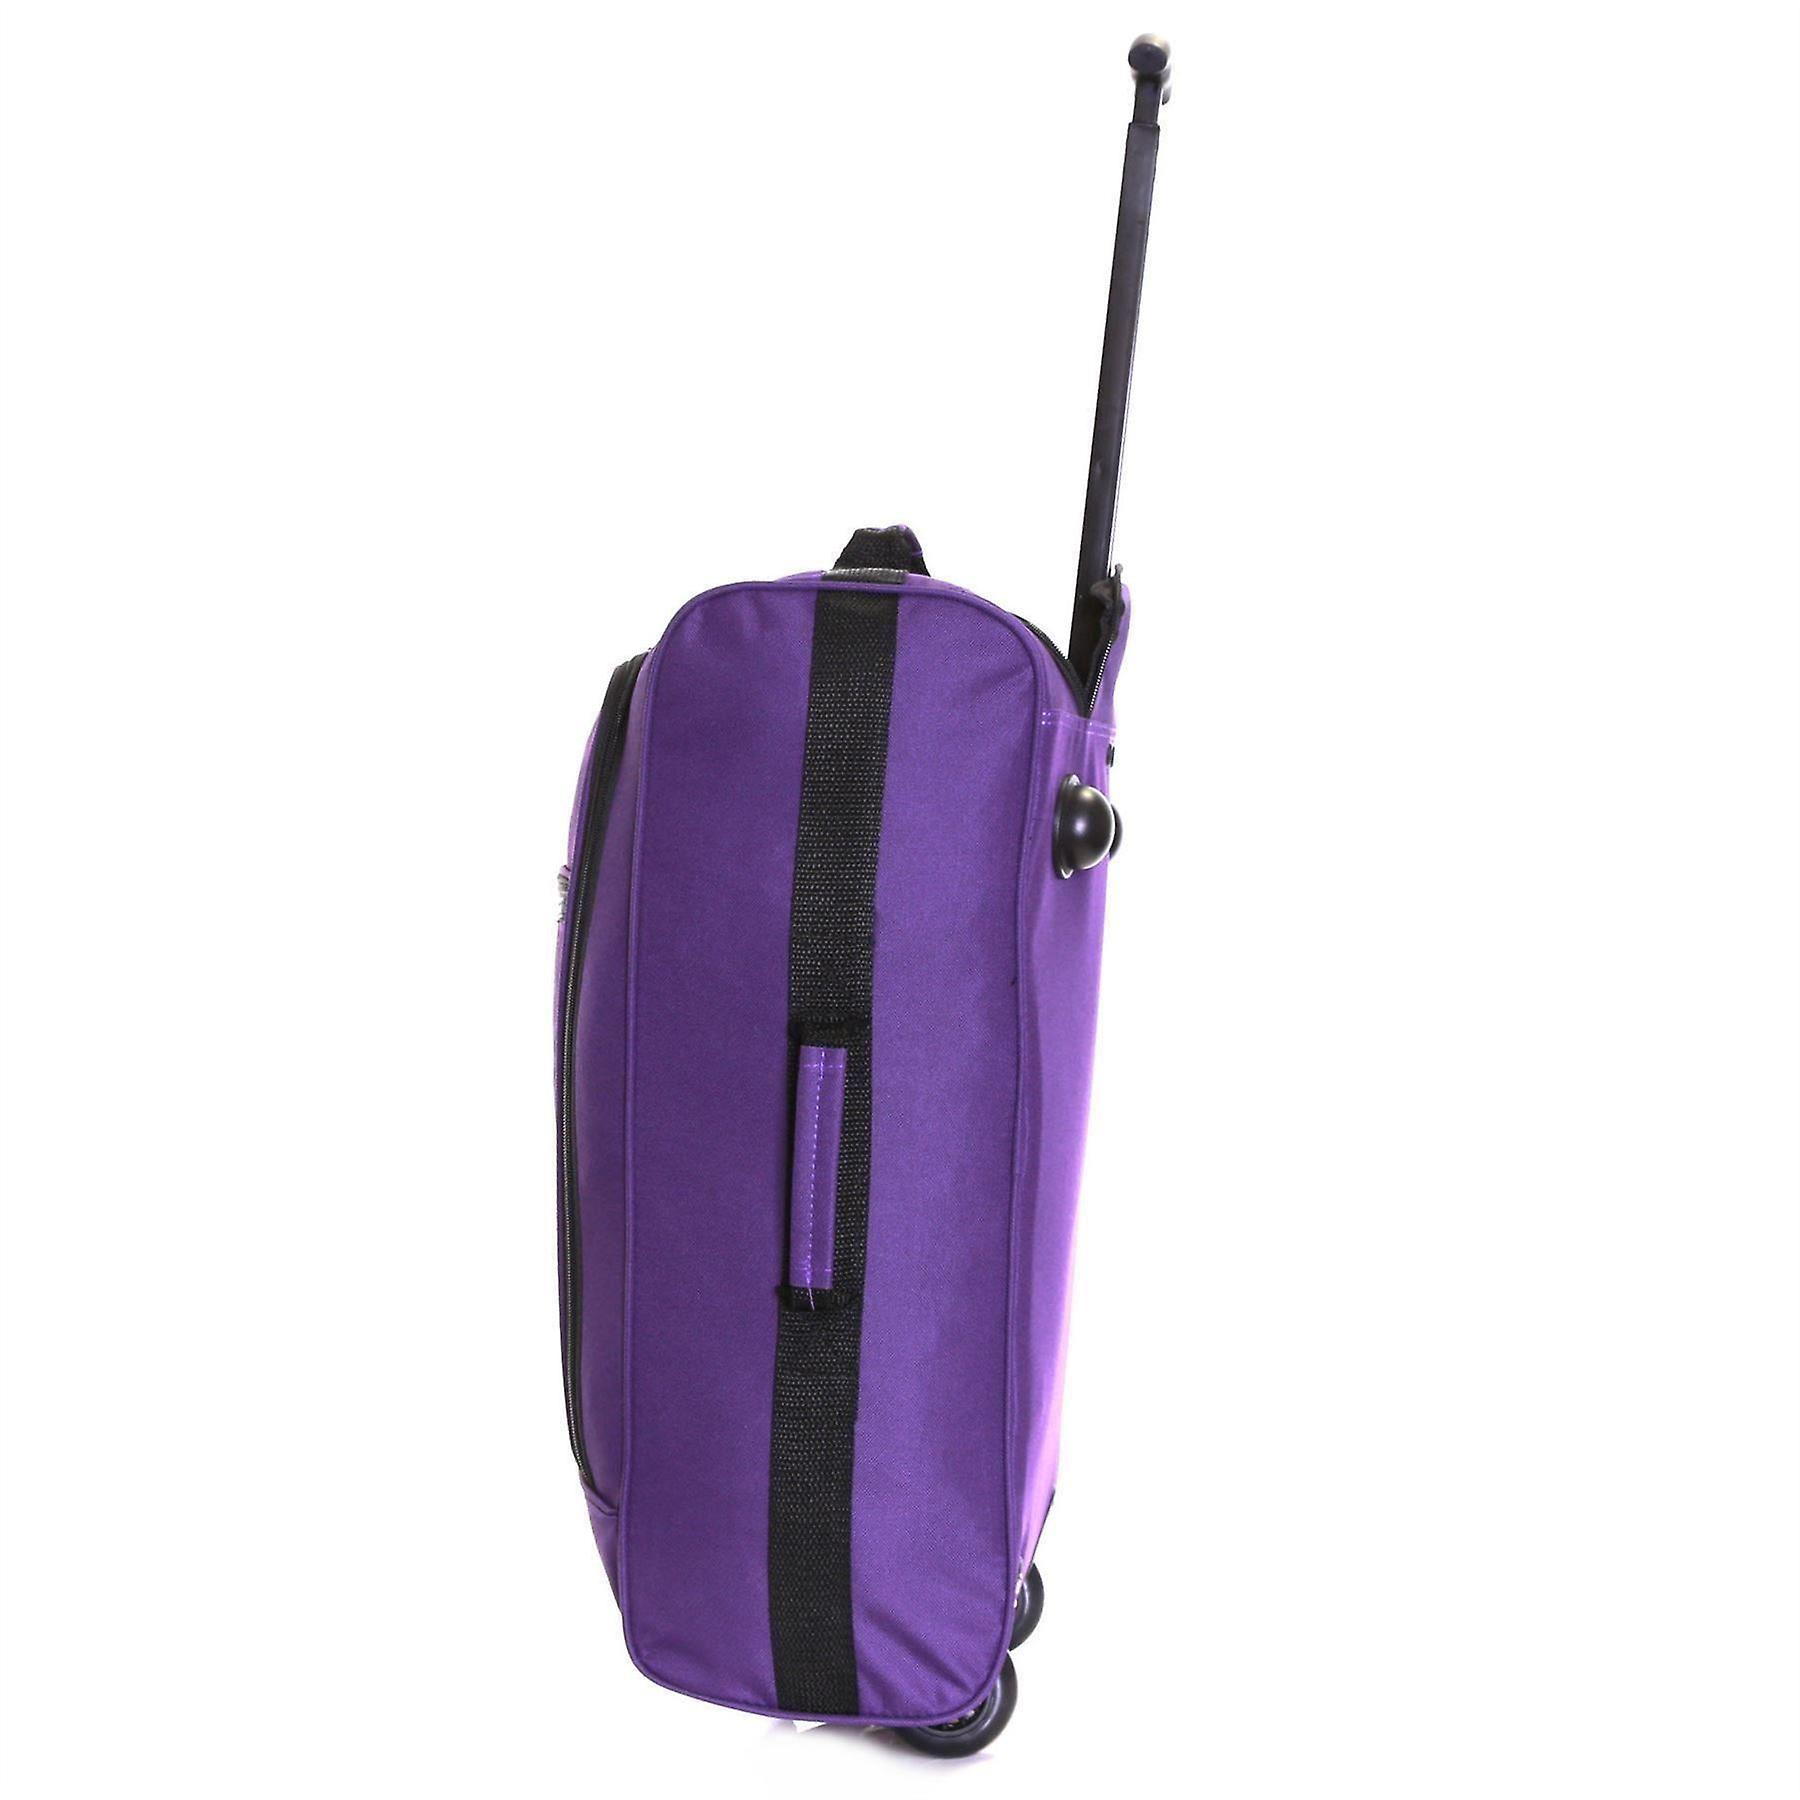 Slimbridge Montecorto Set of 2 Cabin Luggage Bags, (Set of Purple and Red Dots)